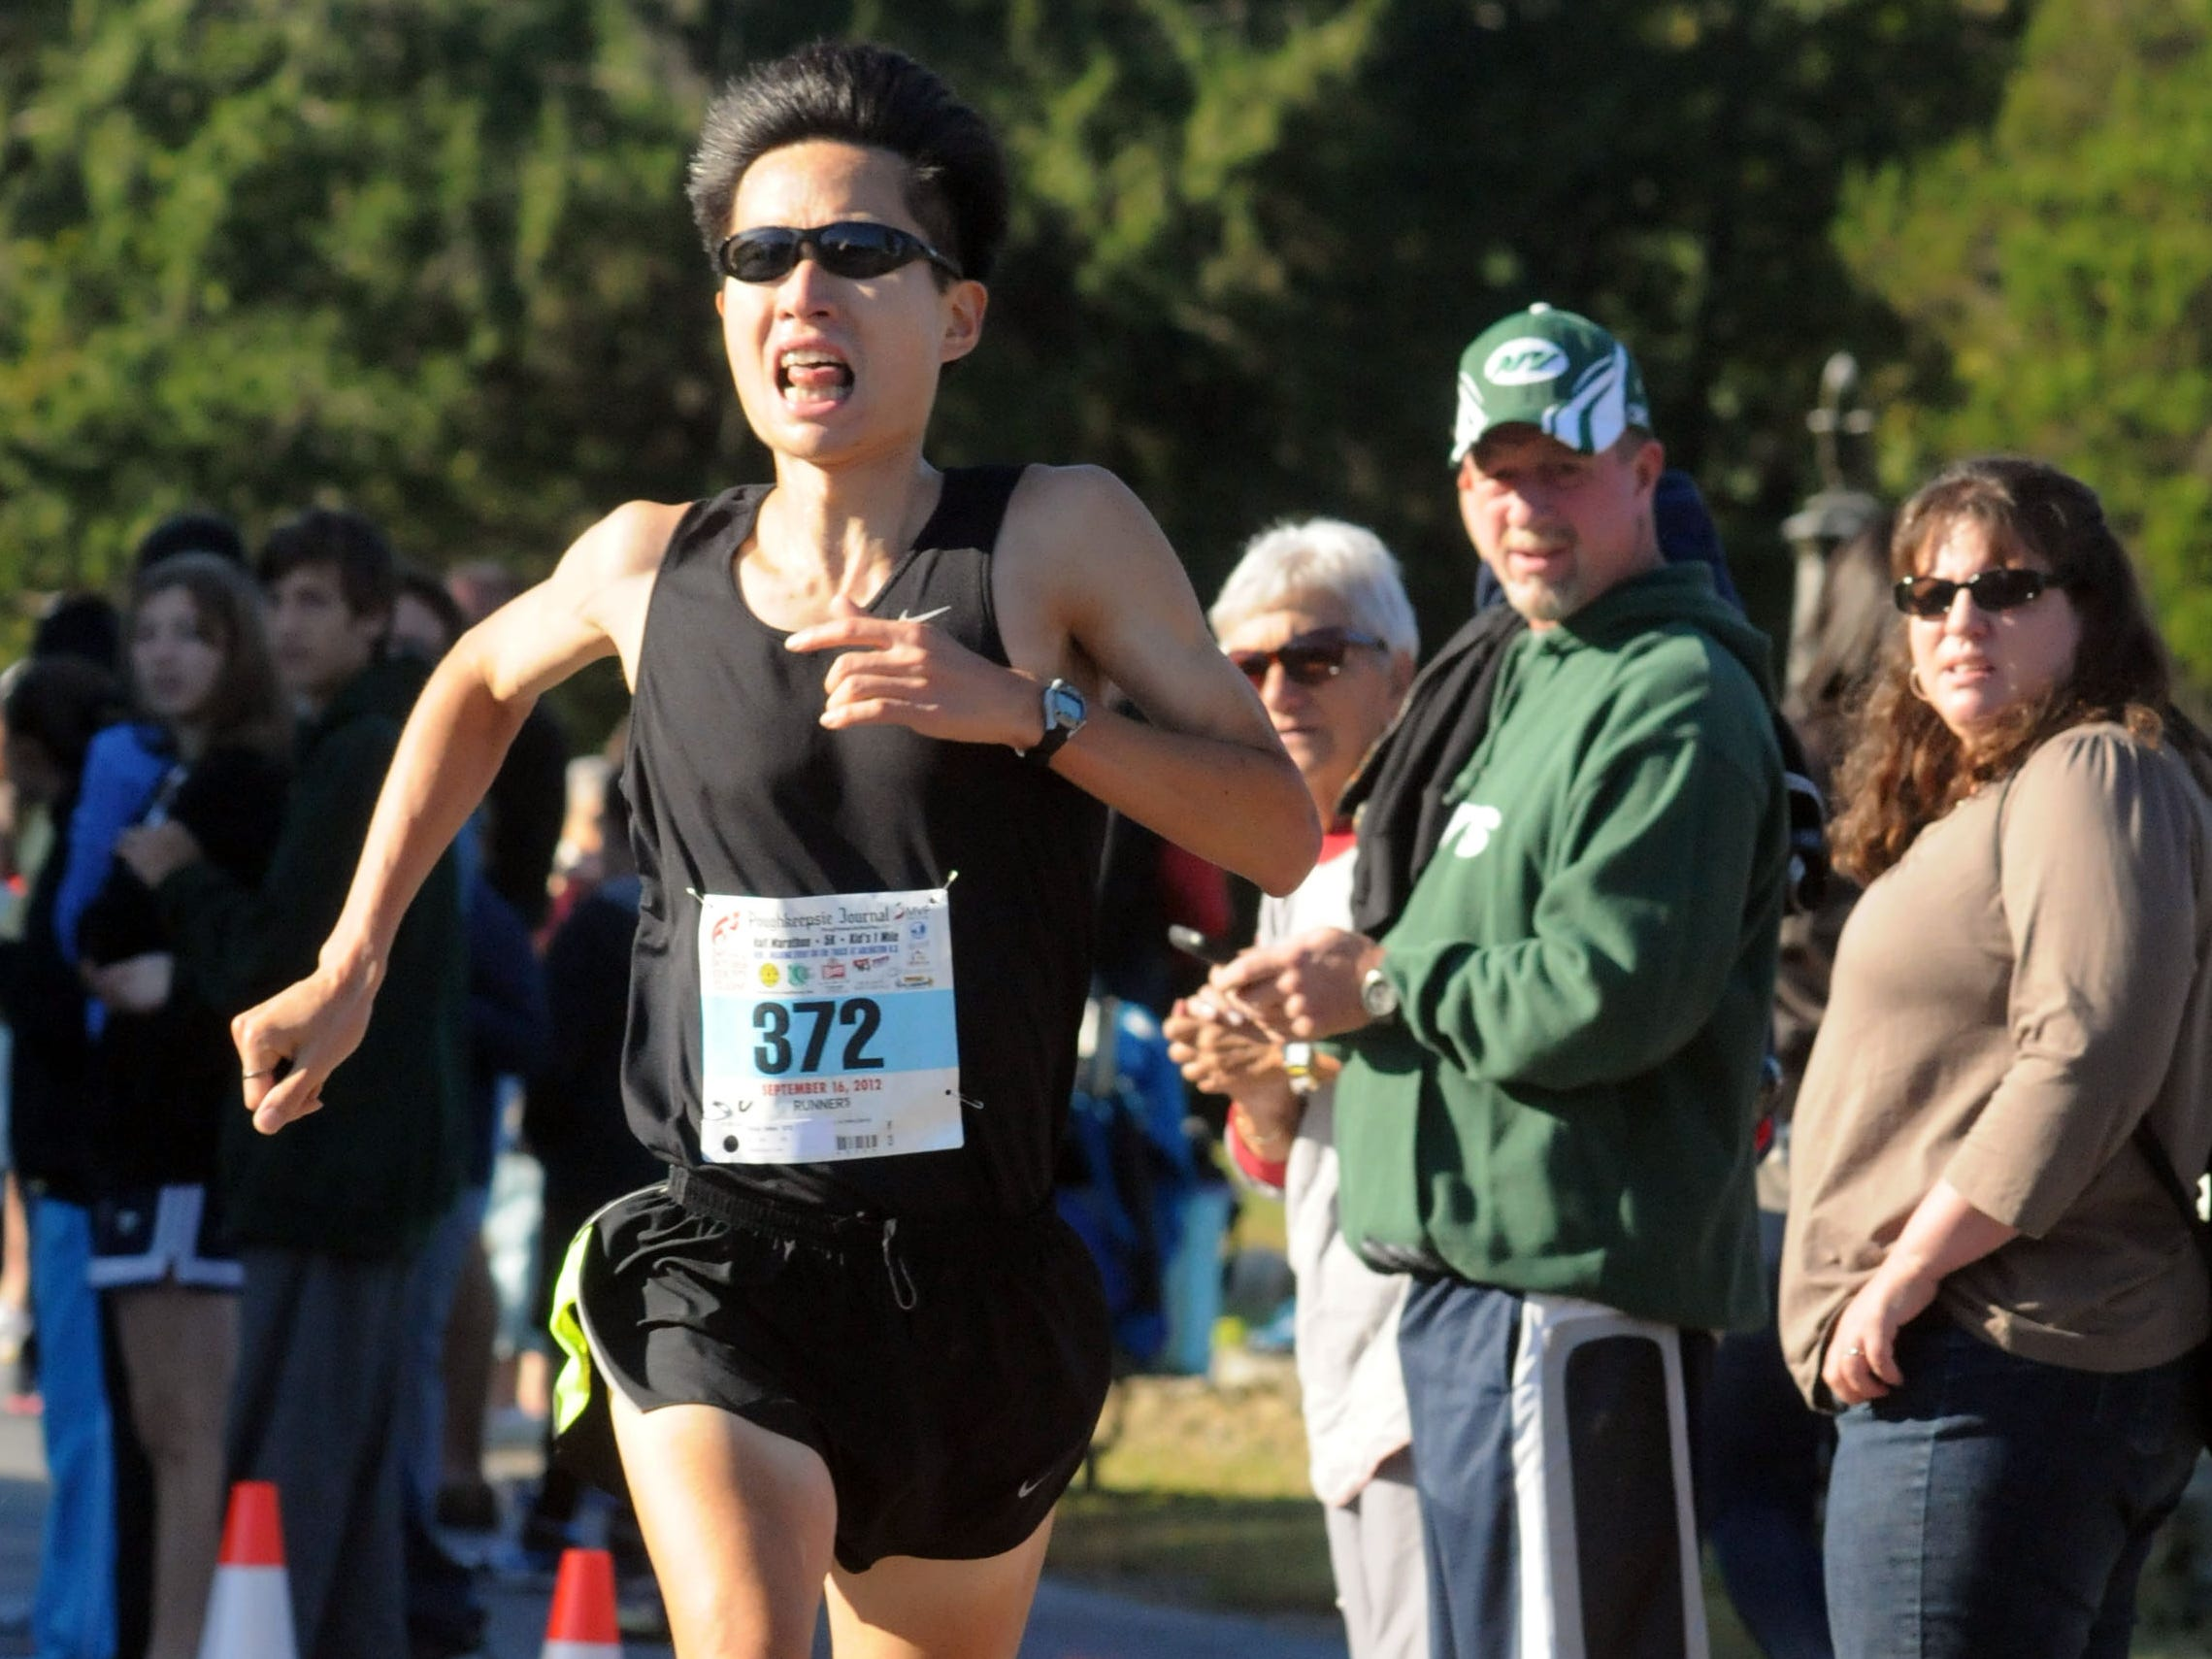 Mike Chow of Wappingers Falls finished second in the Dutchess County Classic 5-kilometer race on Sept. 16, 2012, in LaGrange.